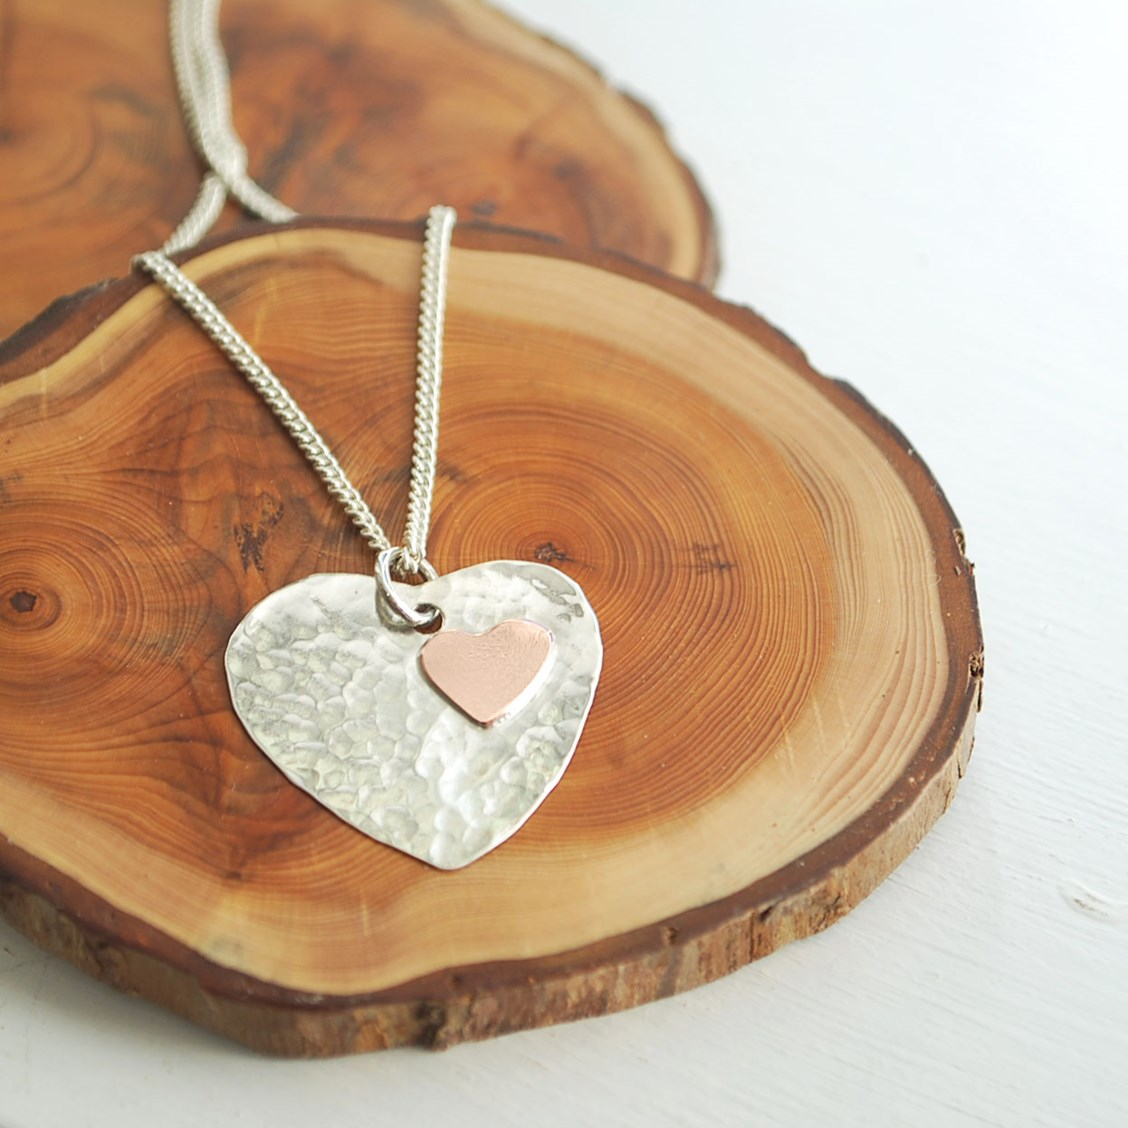 Make silver necklace images make silver necklace images how to make a hammered copper silver heart pendant kernowcraft jpg mozeypictures Images